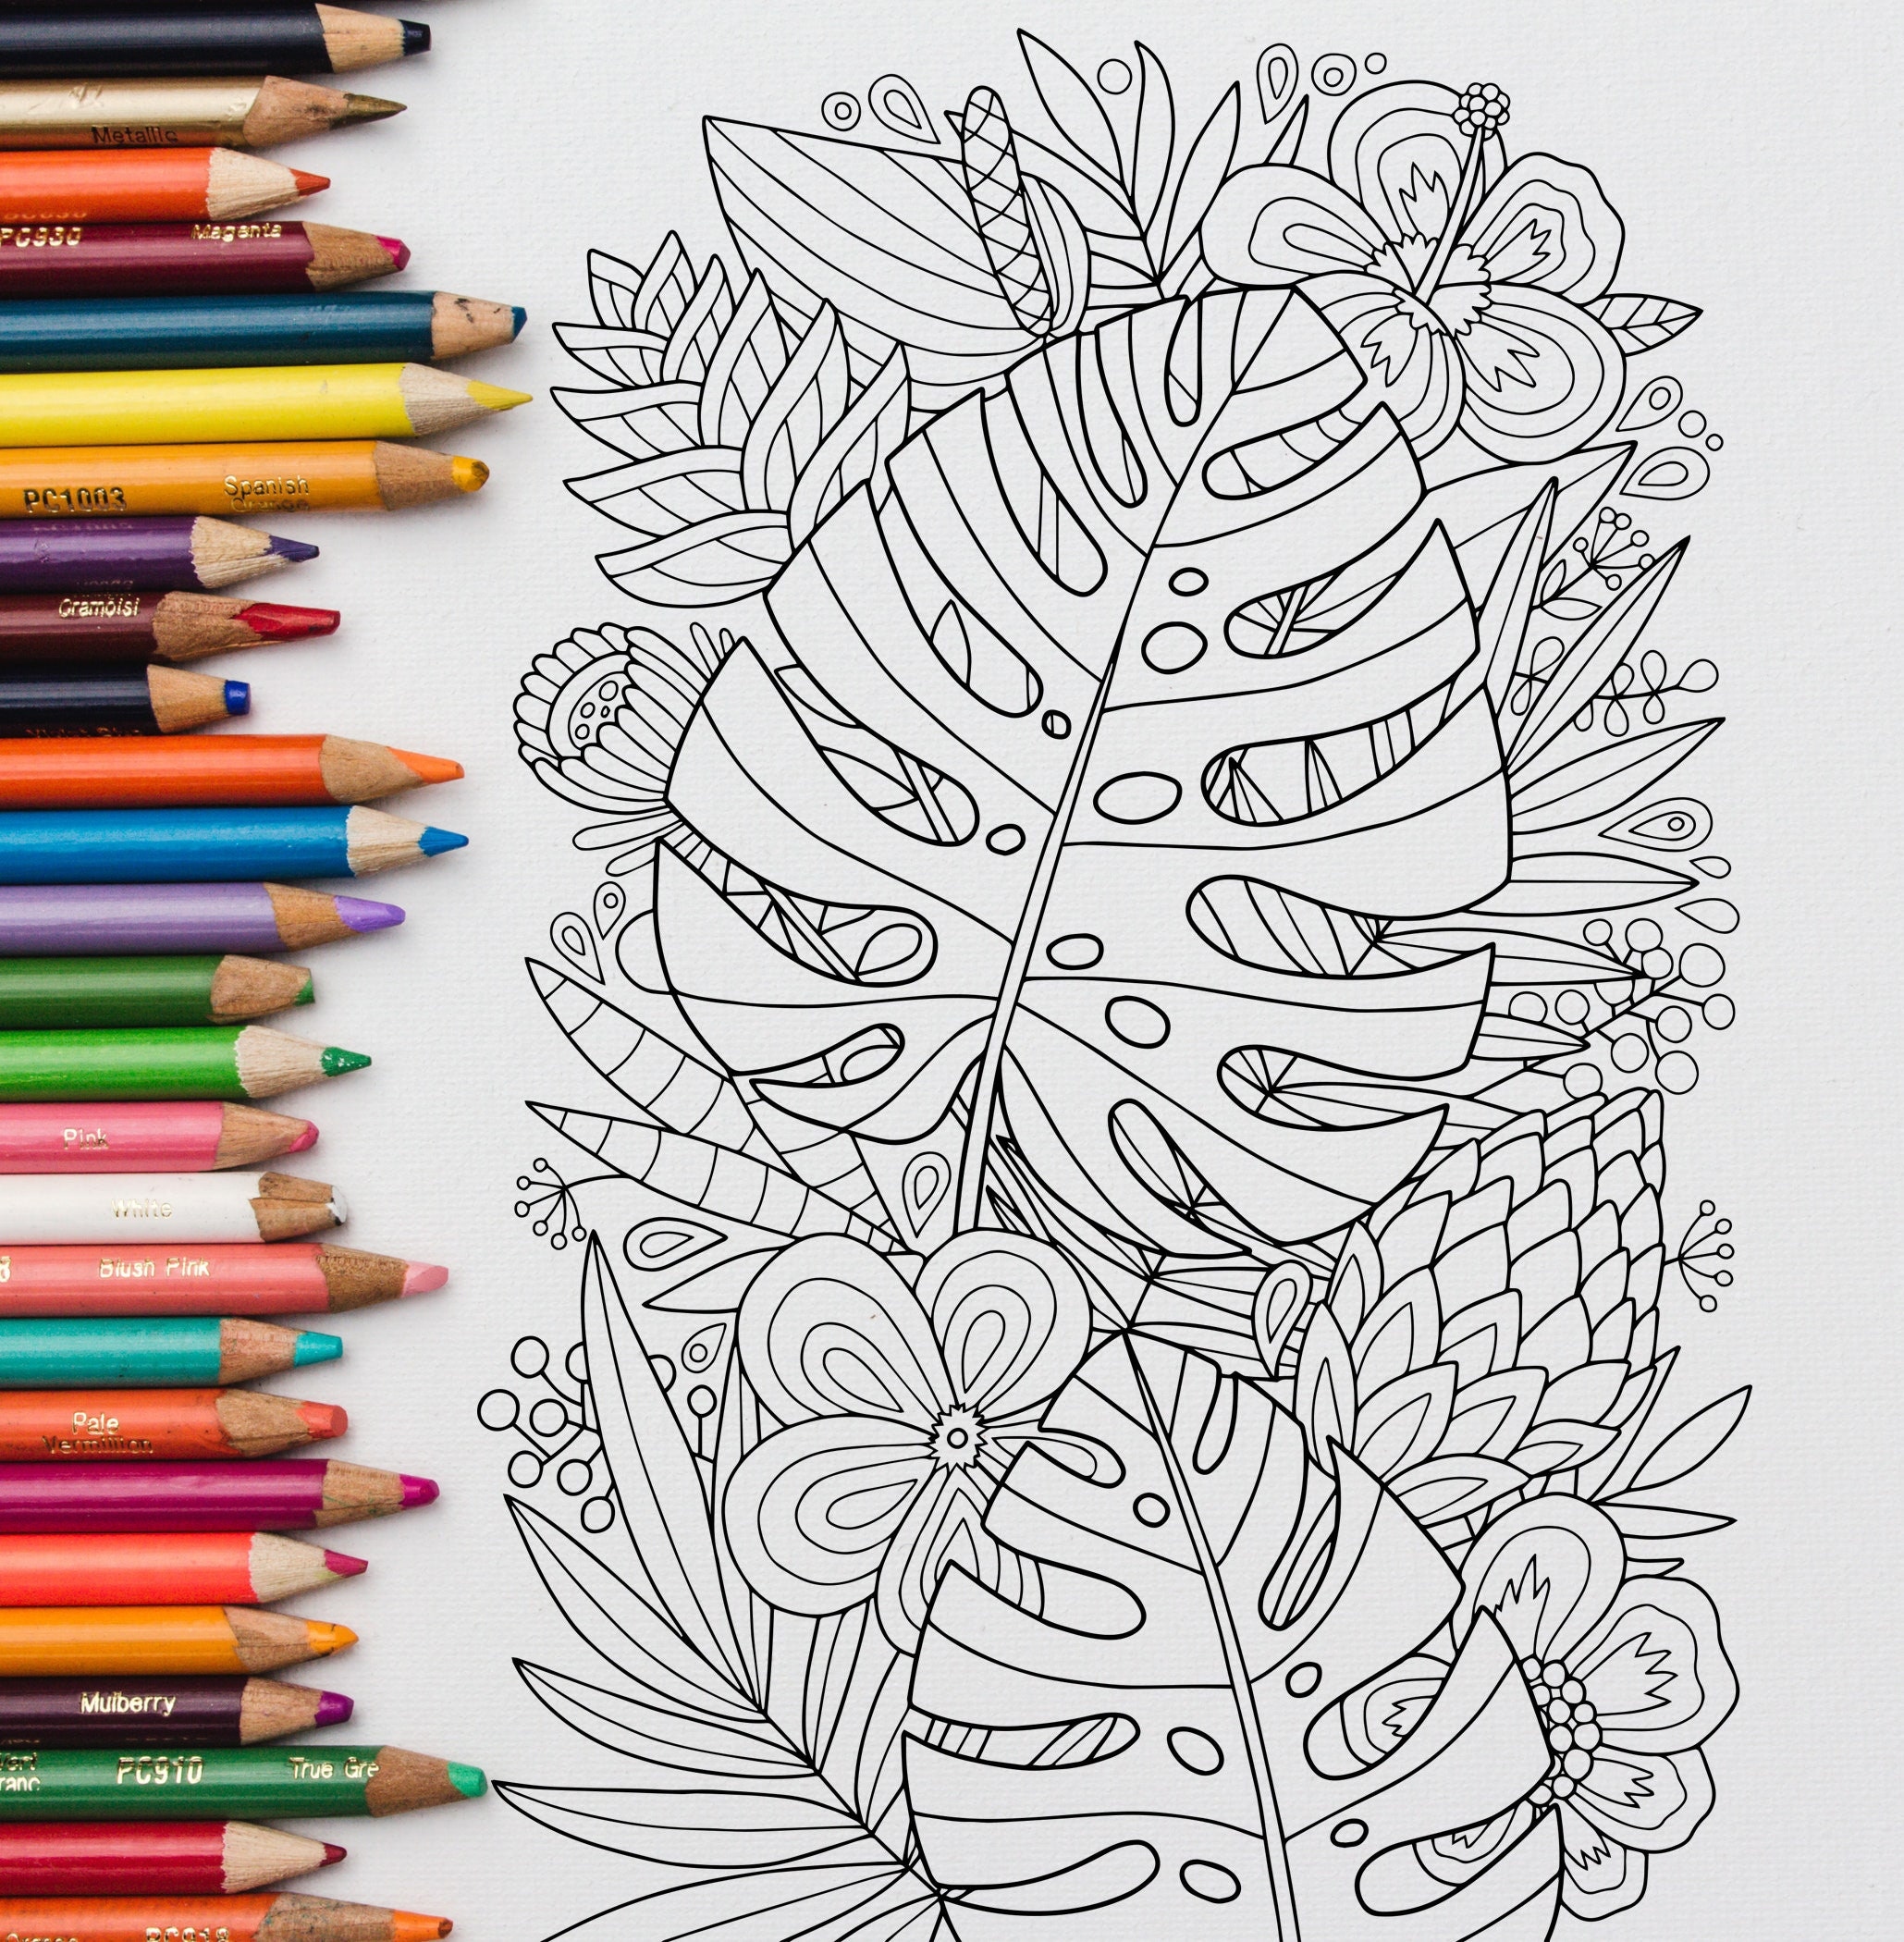 adult coloring page: monstera tropics. doodle art diy | etsy